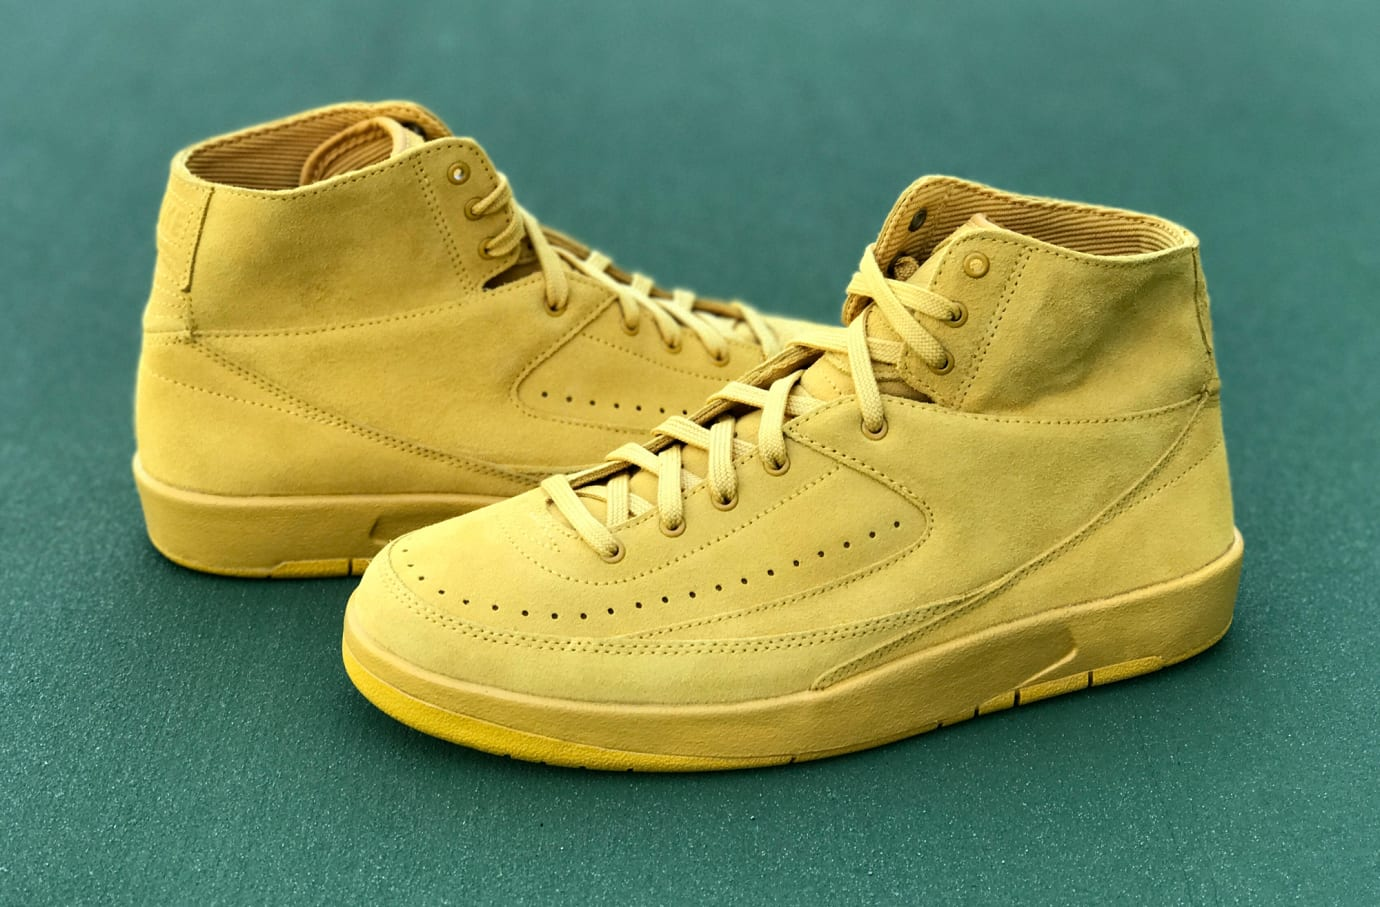 low priced 01d83 57fb3 Air Jordan 2 Decon Release Date | Sole Collector